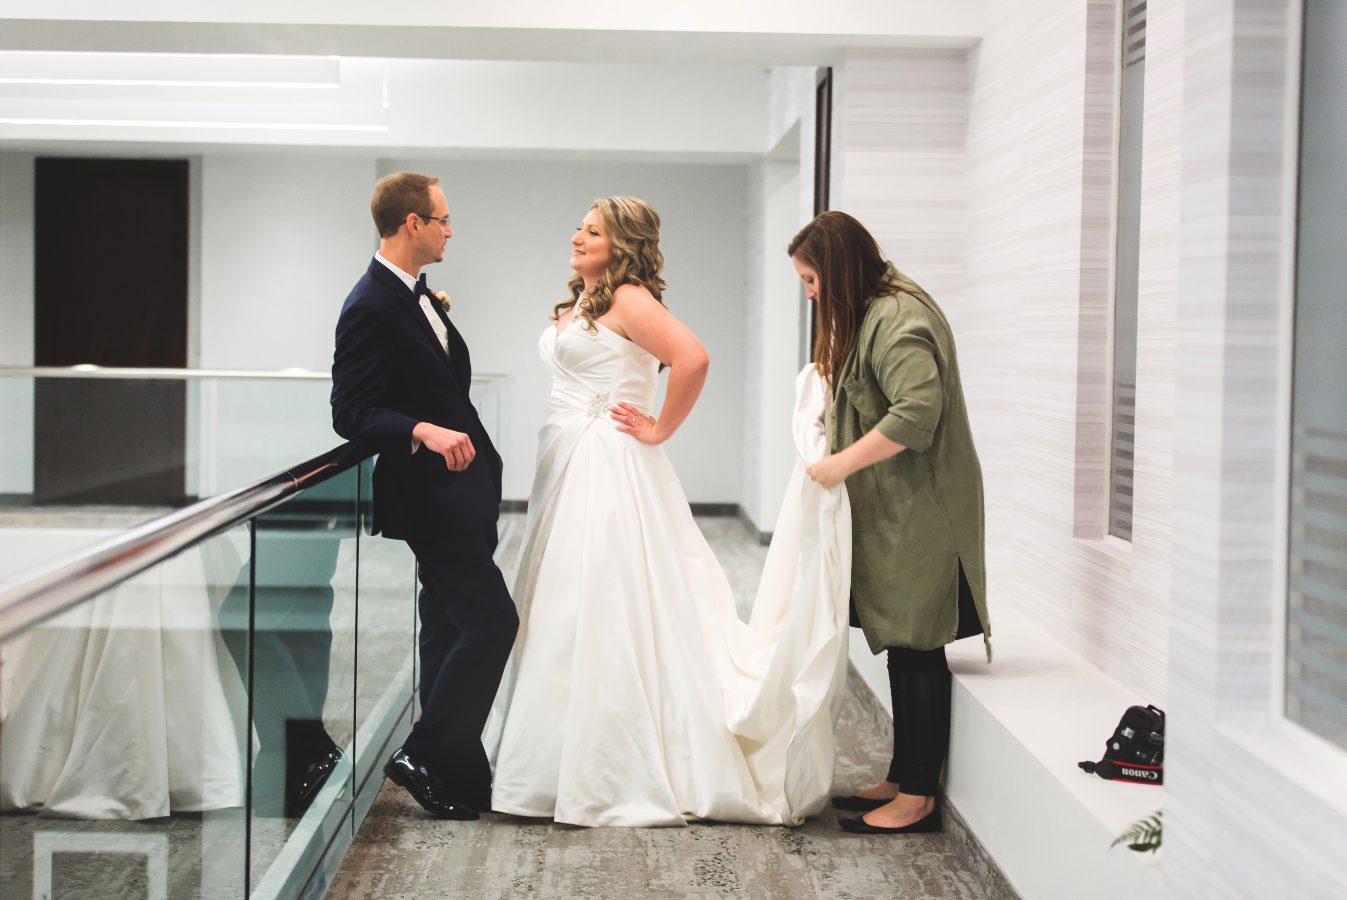 Moments-by-Lauren-Wedding-Photographer-Lifestyle-Photography-Hamilton-Toronto-Niagara-Behind-The-Scenes-Photos-Image-4.png